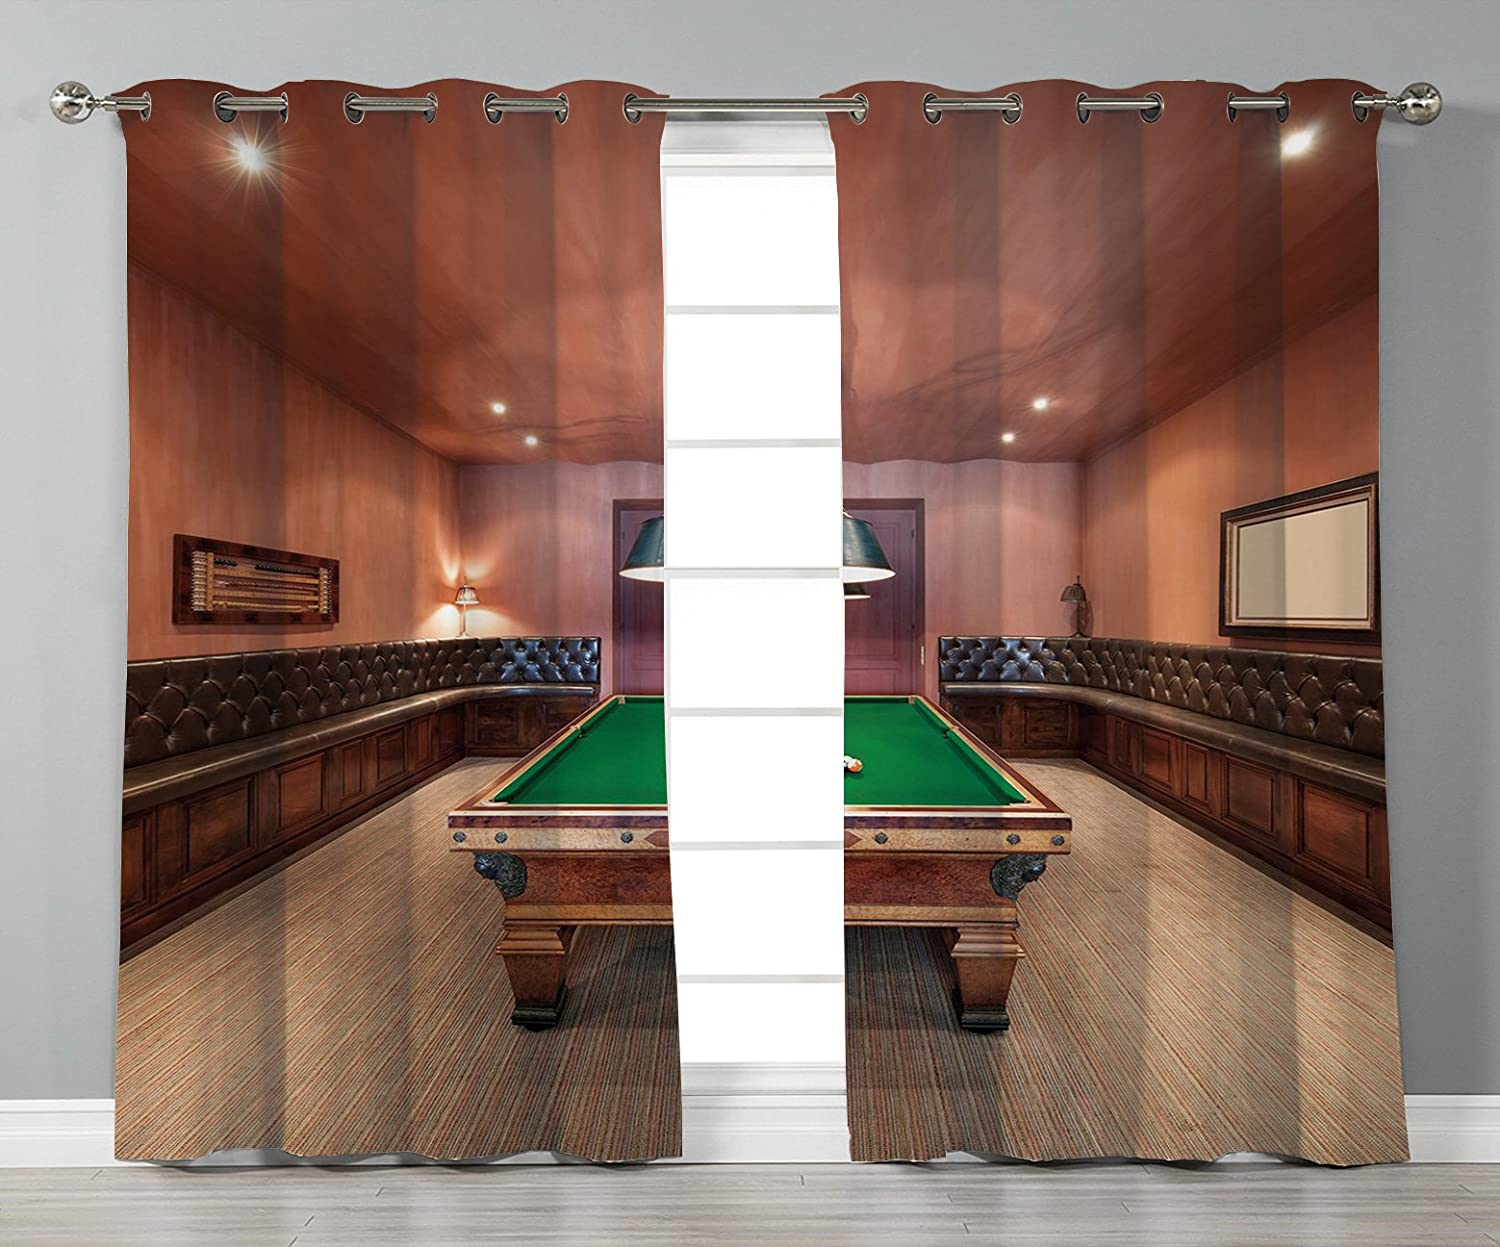 Thermal Insulated Blackout Grommet Window Curtains Modern Decor Entertainment Room In Mansion Pool Table Billiard Lifestyle Photo Print Cinnamon Brown Green 2 Panel Set Window Drapes For Living Room B Amazon In Home Kitchen